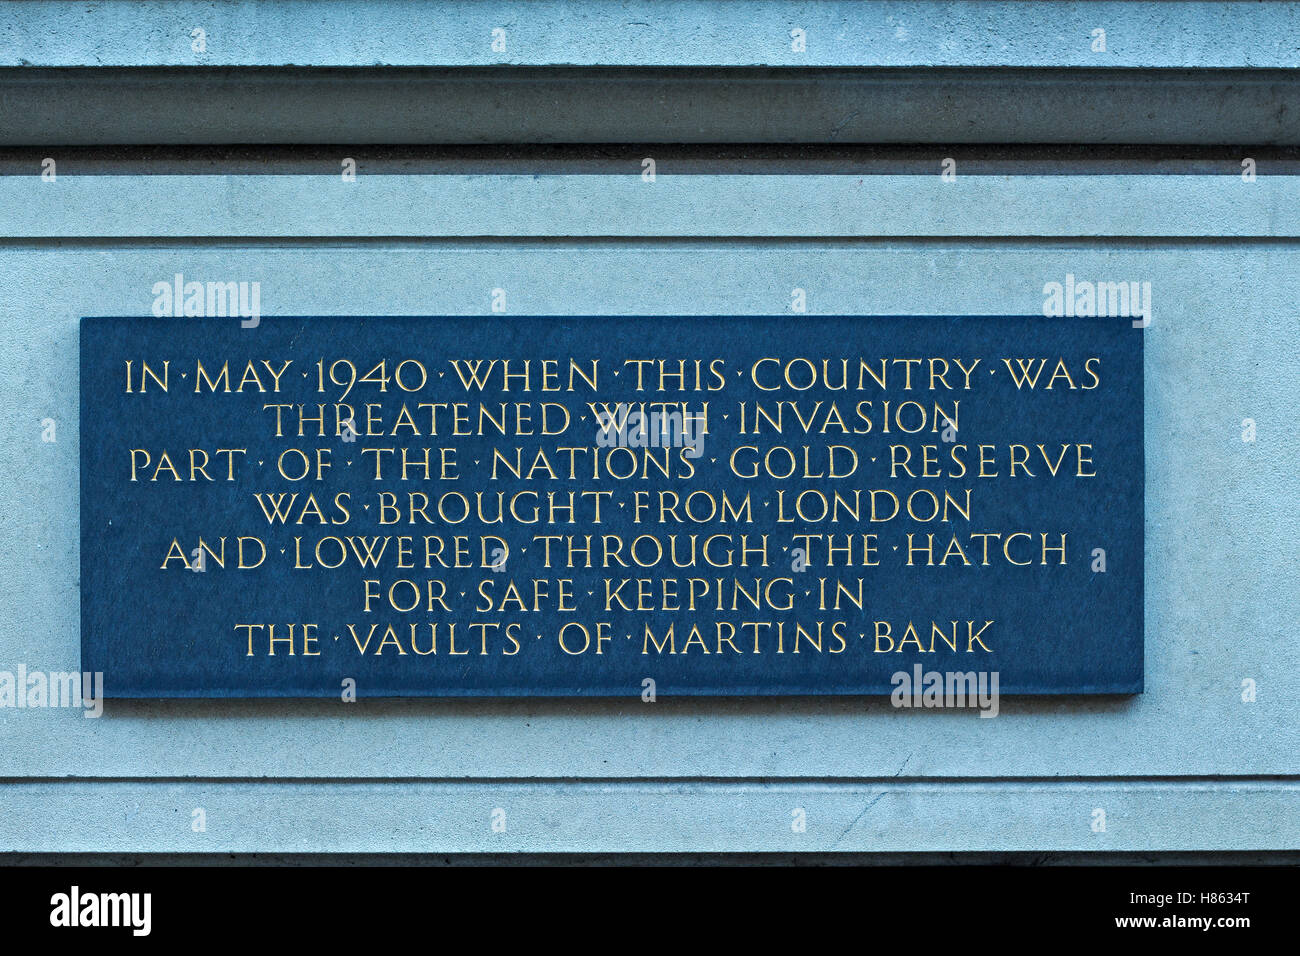 Plaque on the wall of Martins Bank Liverpool where the UK Gold reserve was stored during second world war - Stock Image